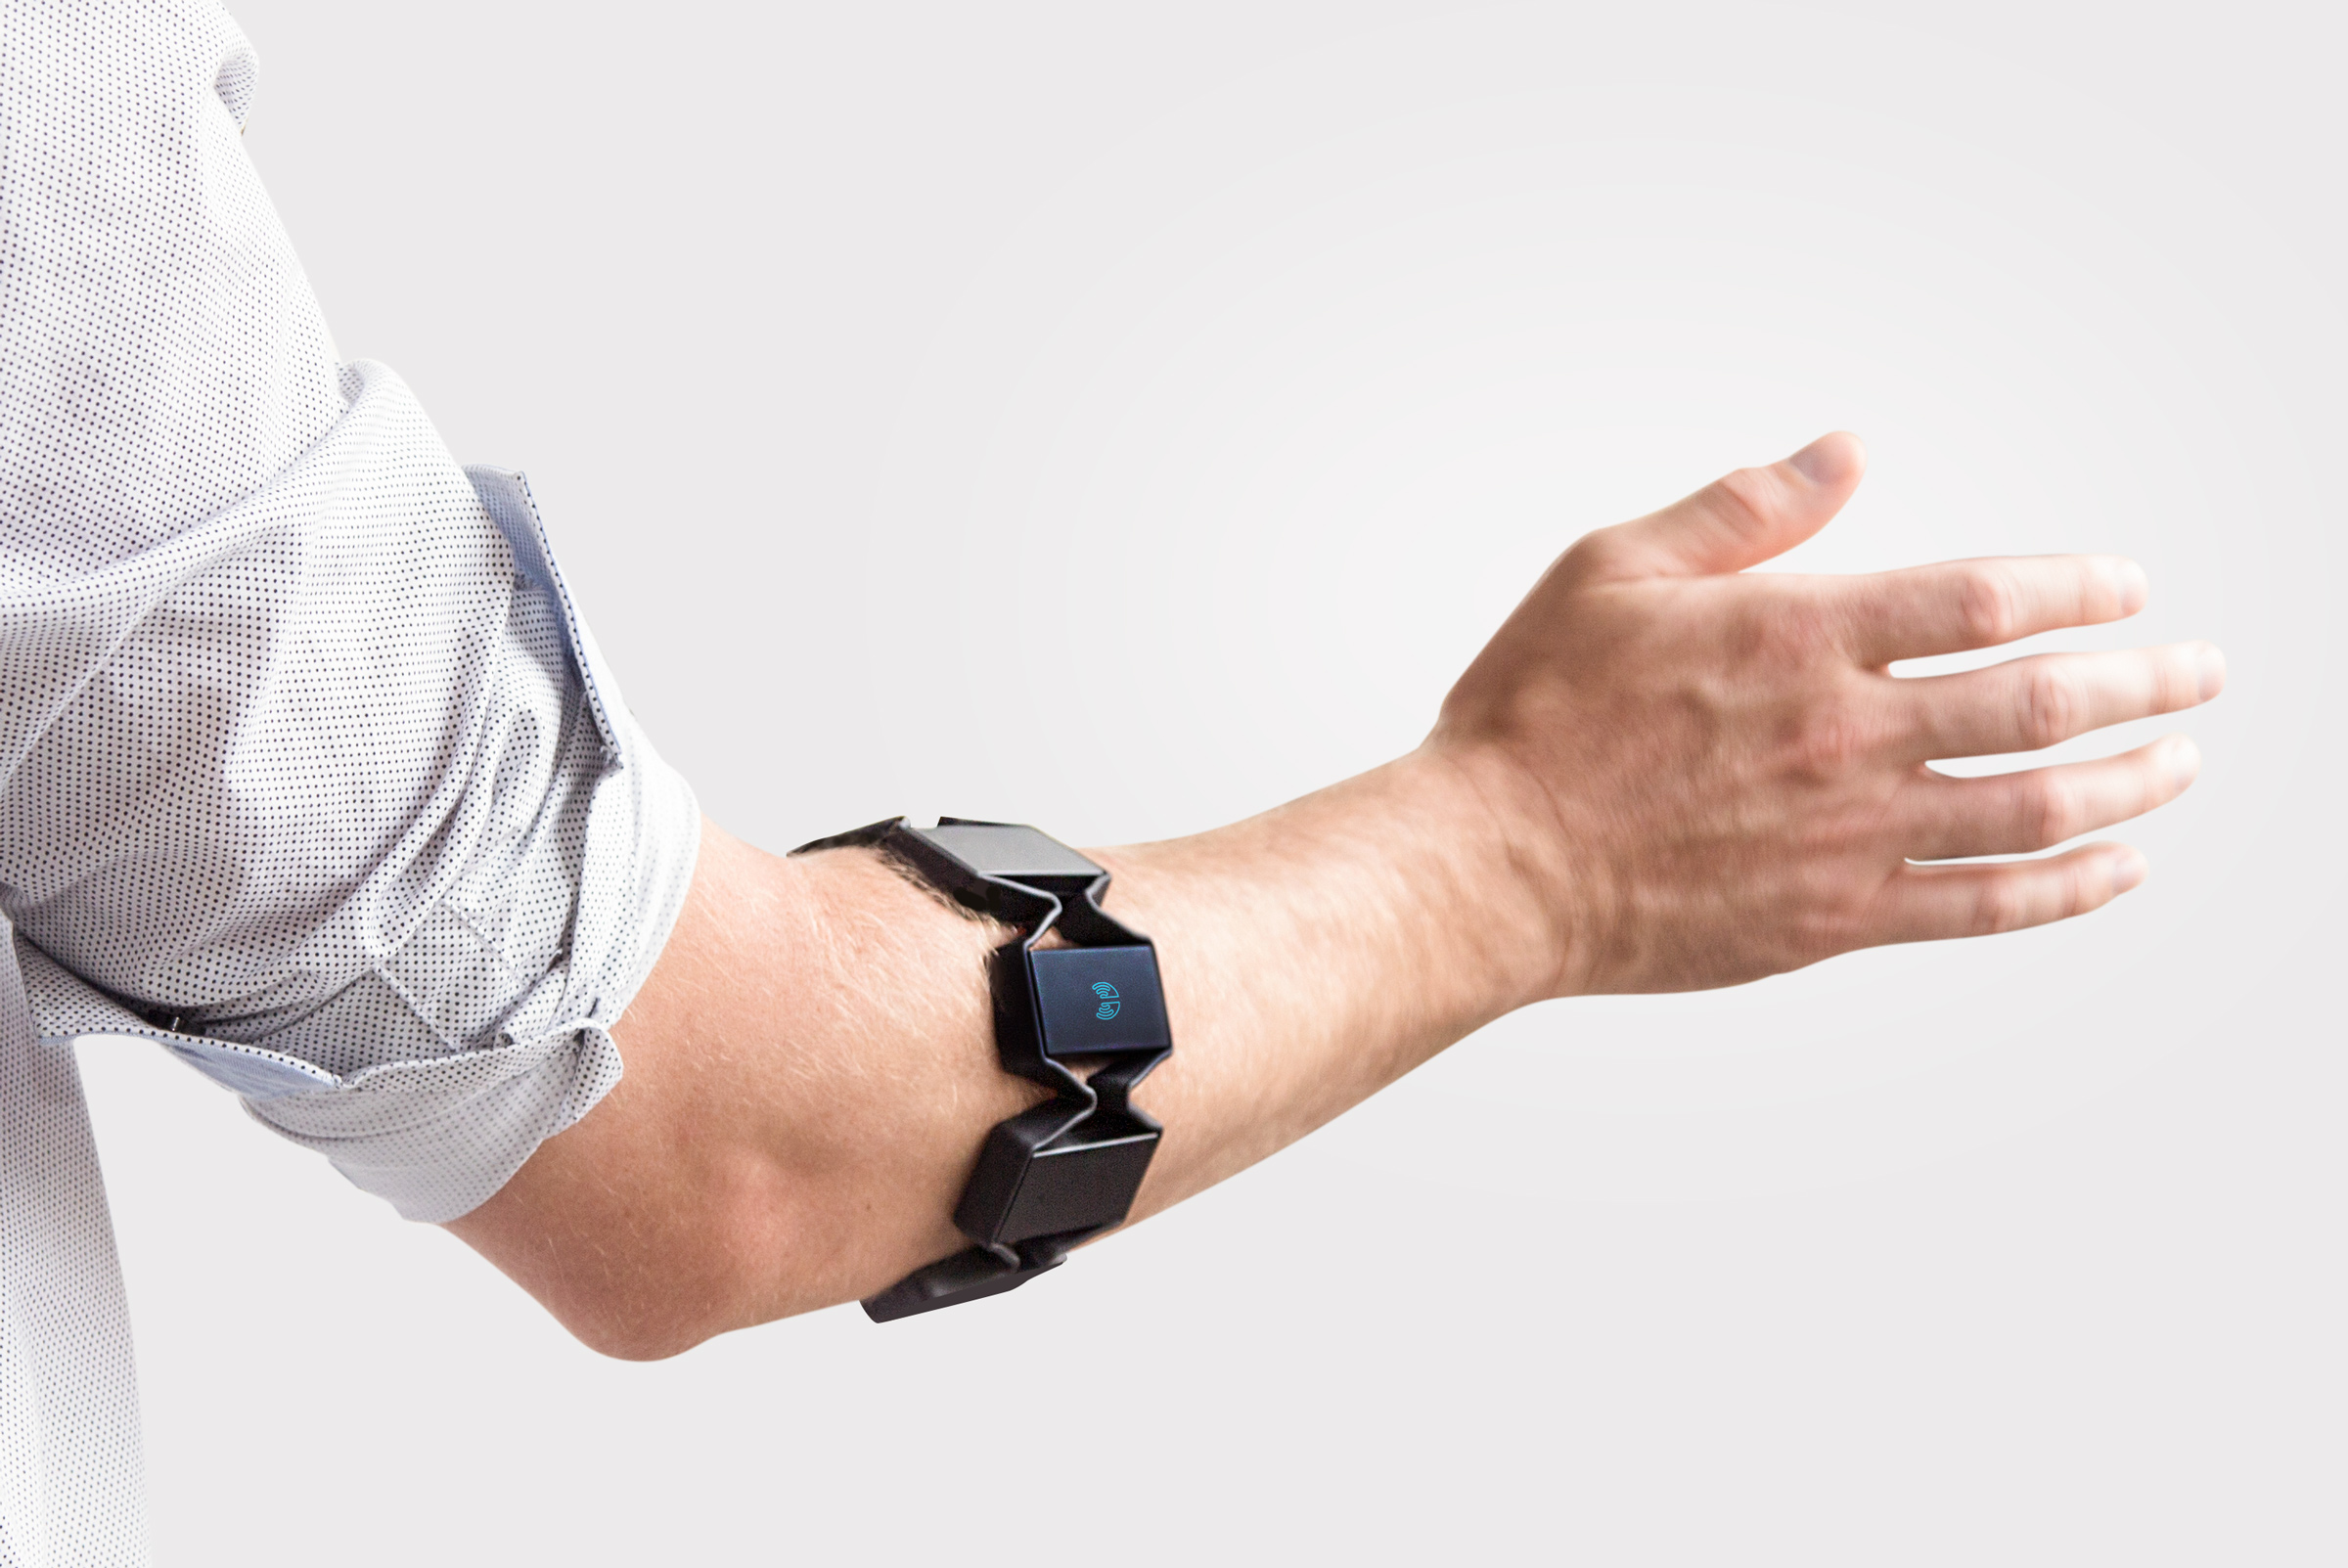 New wearable armband is revolutionising the way we interact with the digital world